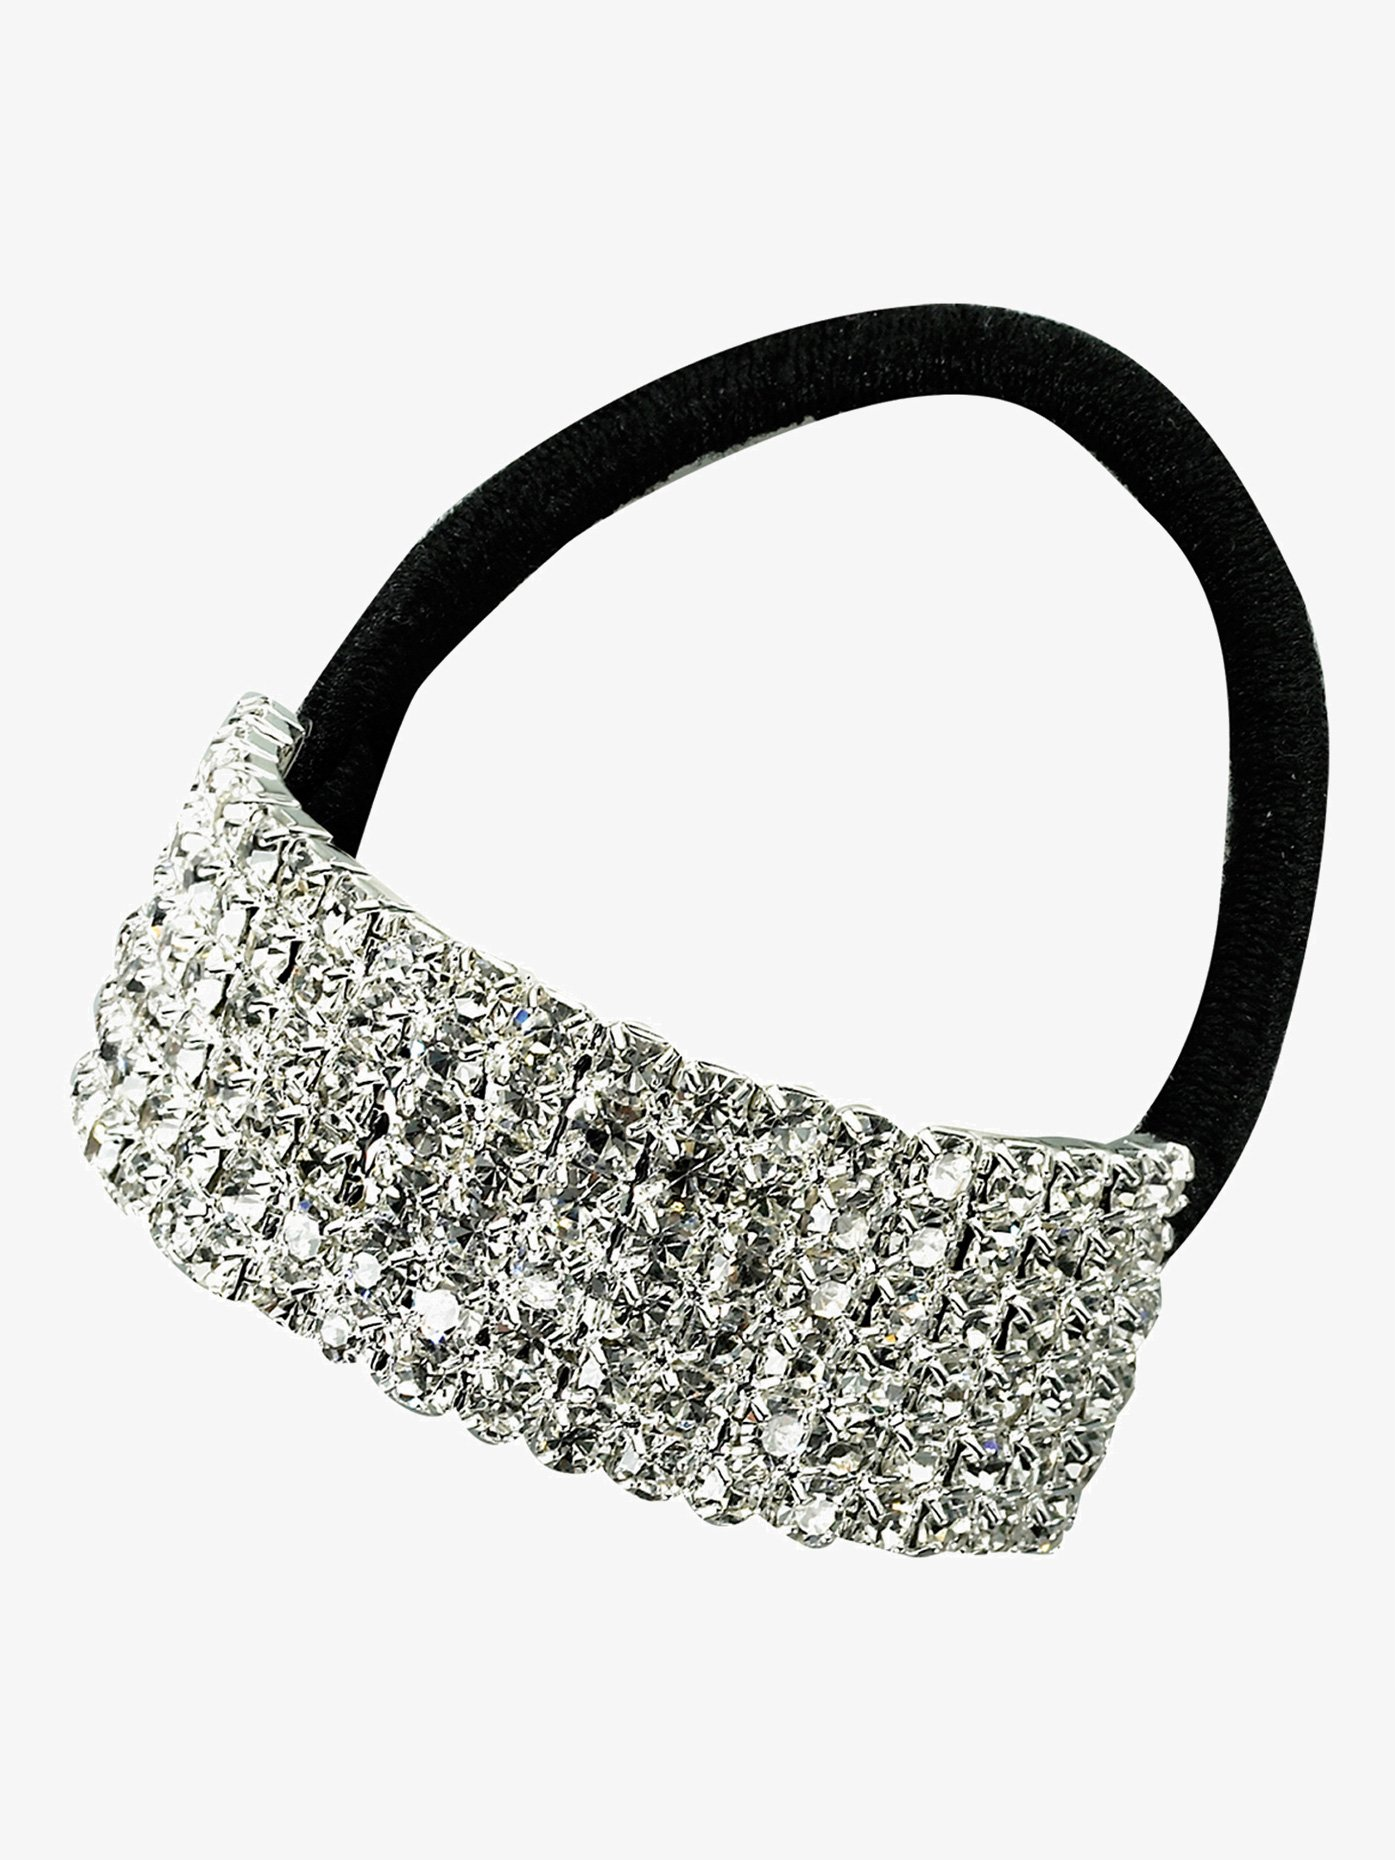 Rhinestones Unlimited Crystal Cuff Ponytail Binders Small RU057